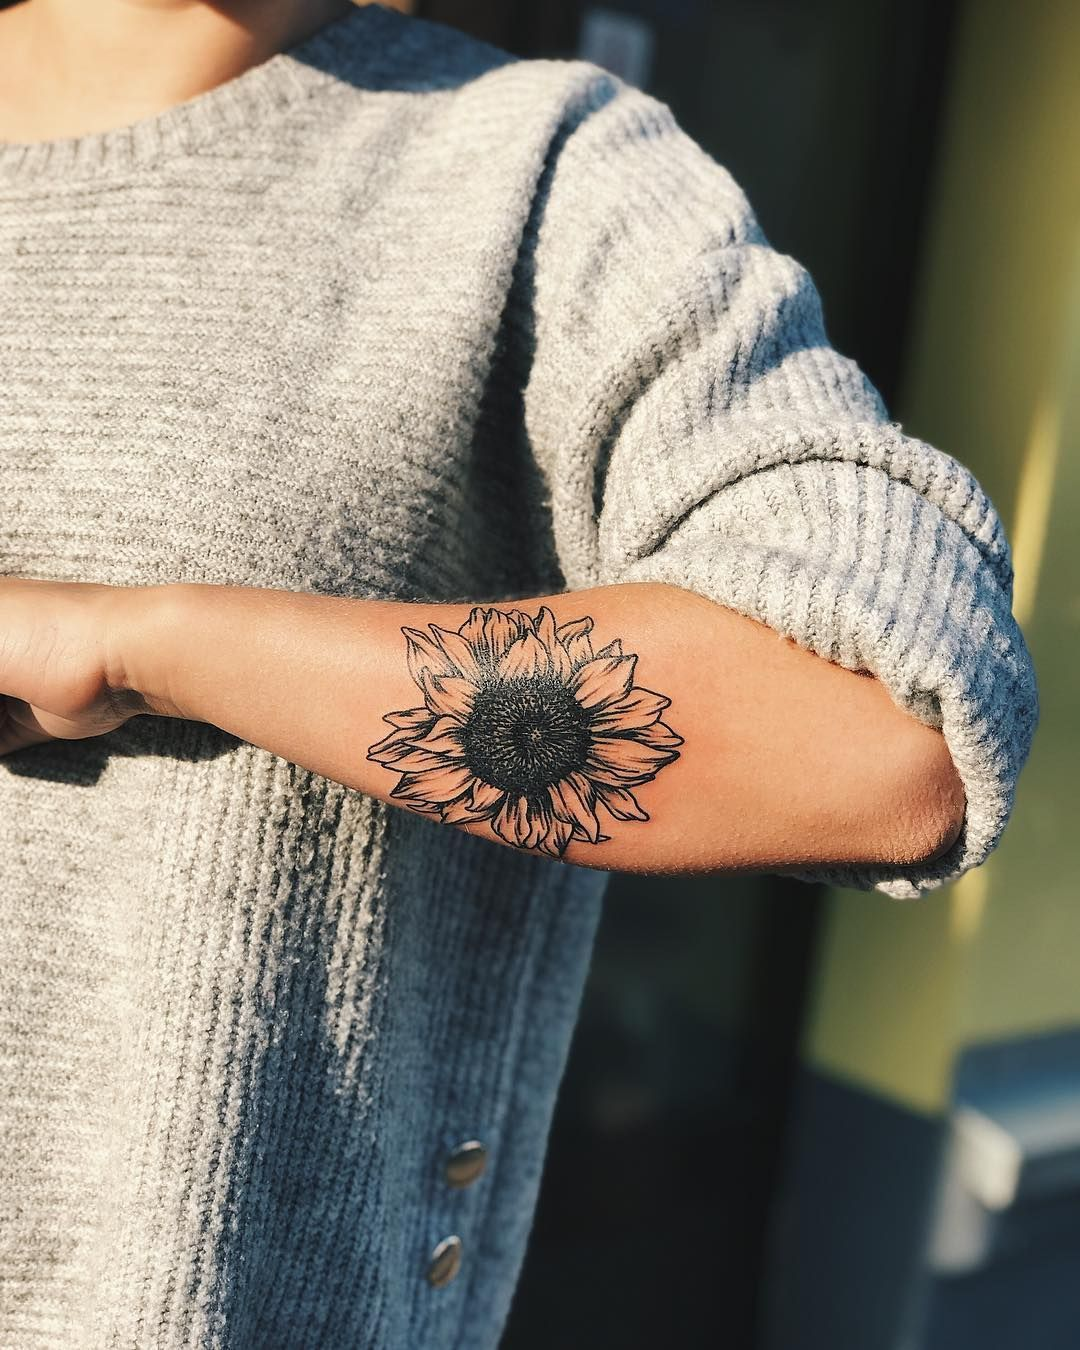 Sunflower 🌻 ktlincarolin sunflowertattoo sunflower